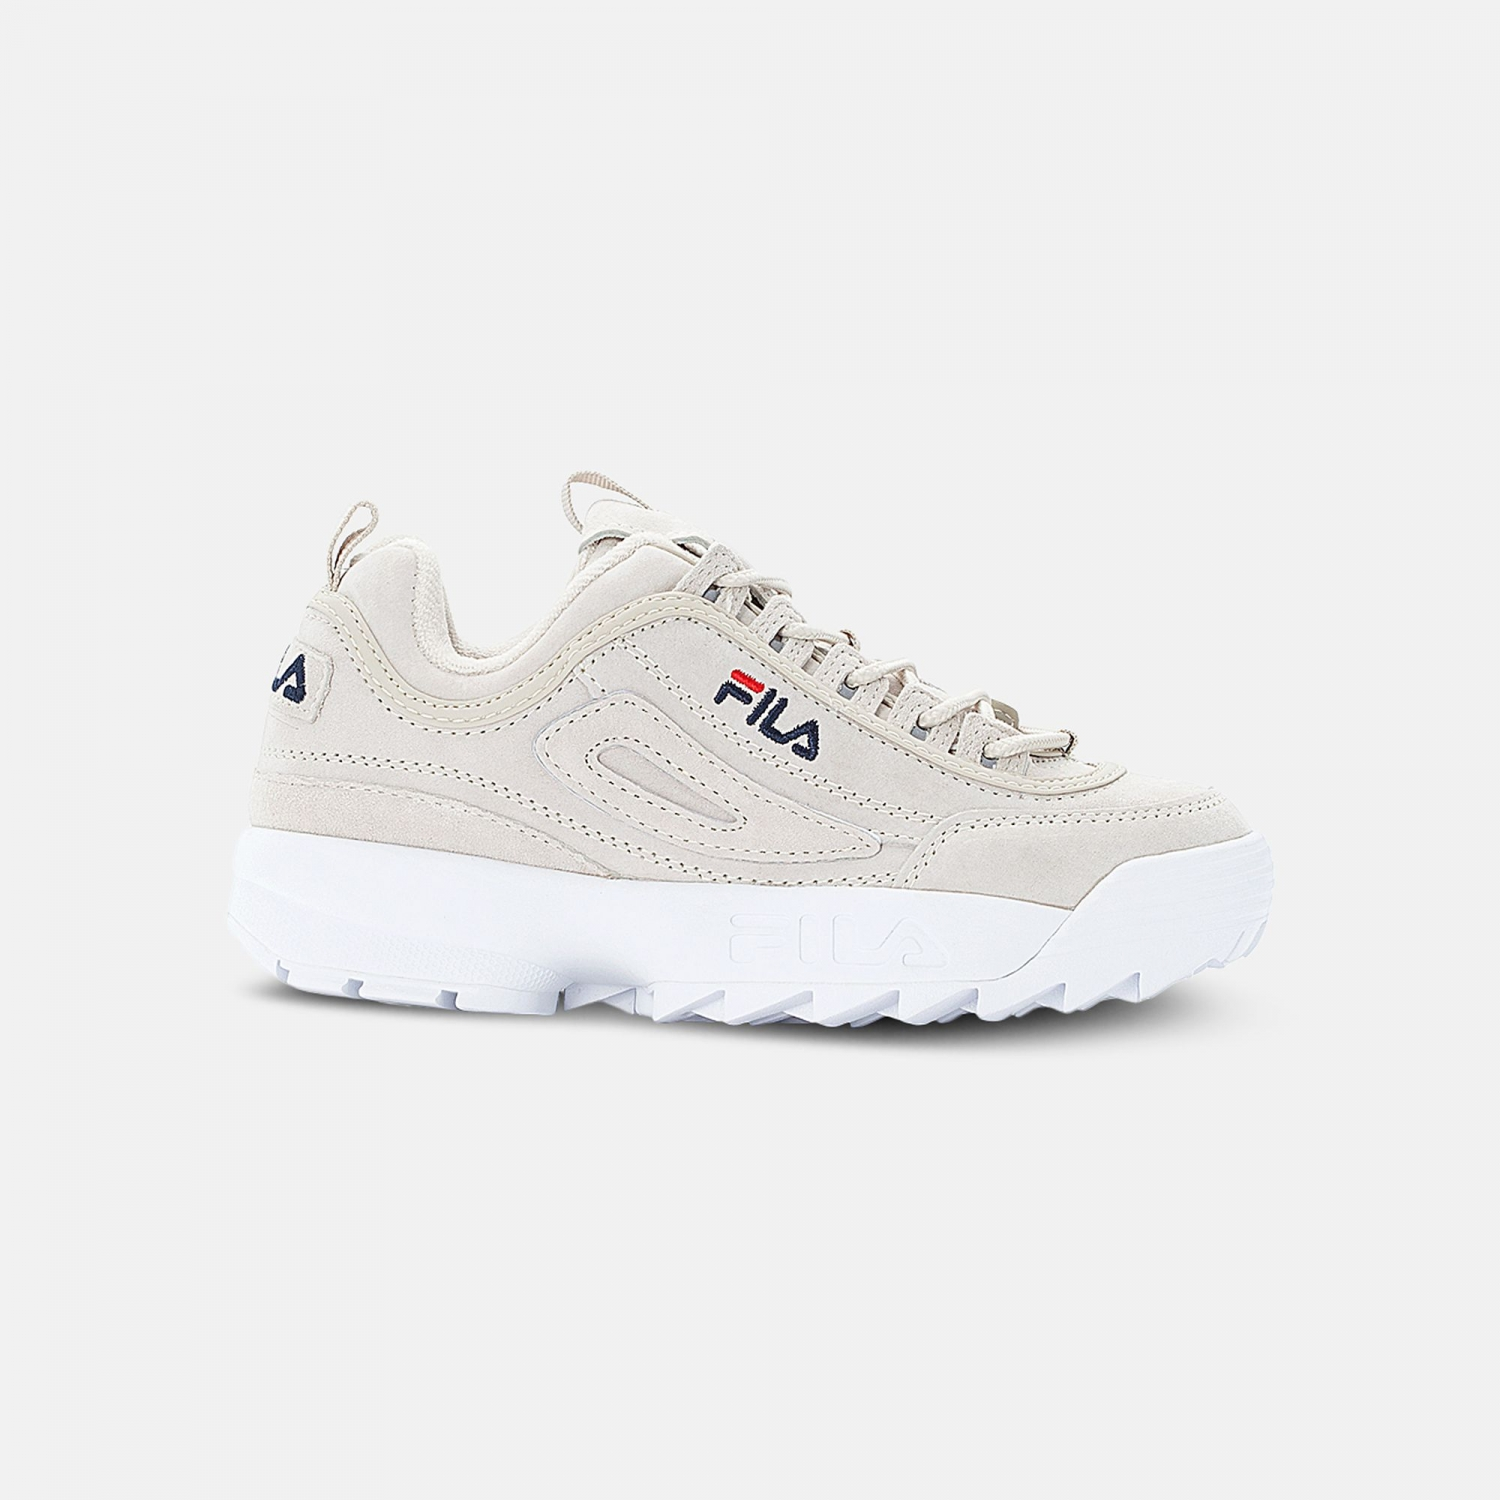 Fila Disruptor S Low Wmn chateau grey Bild 1